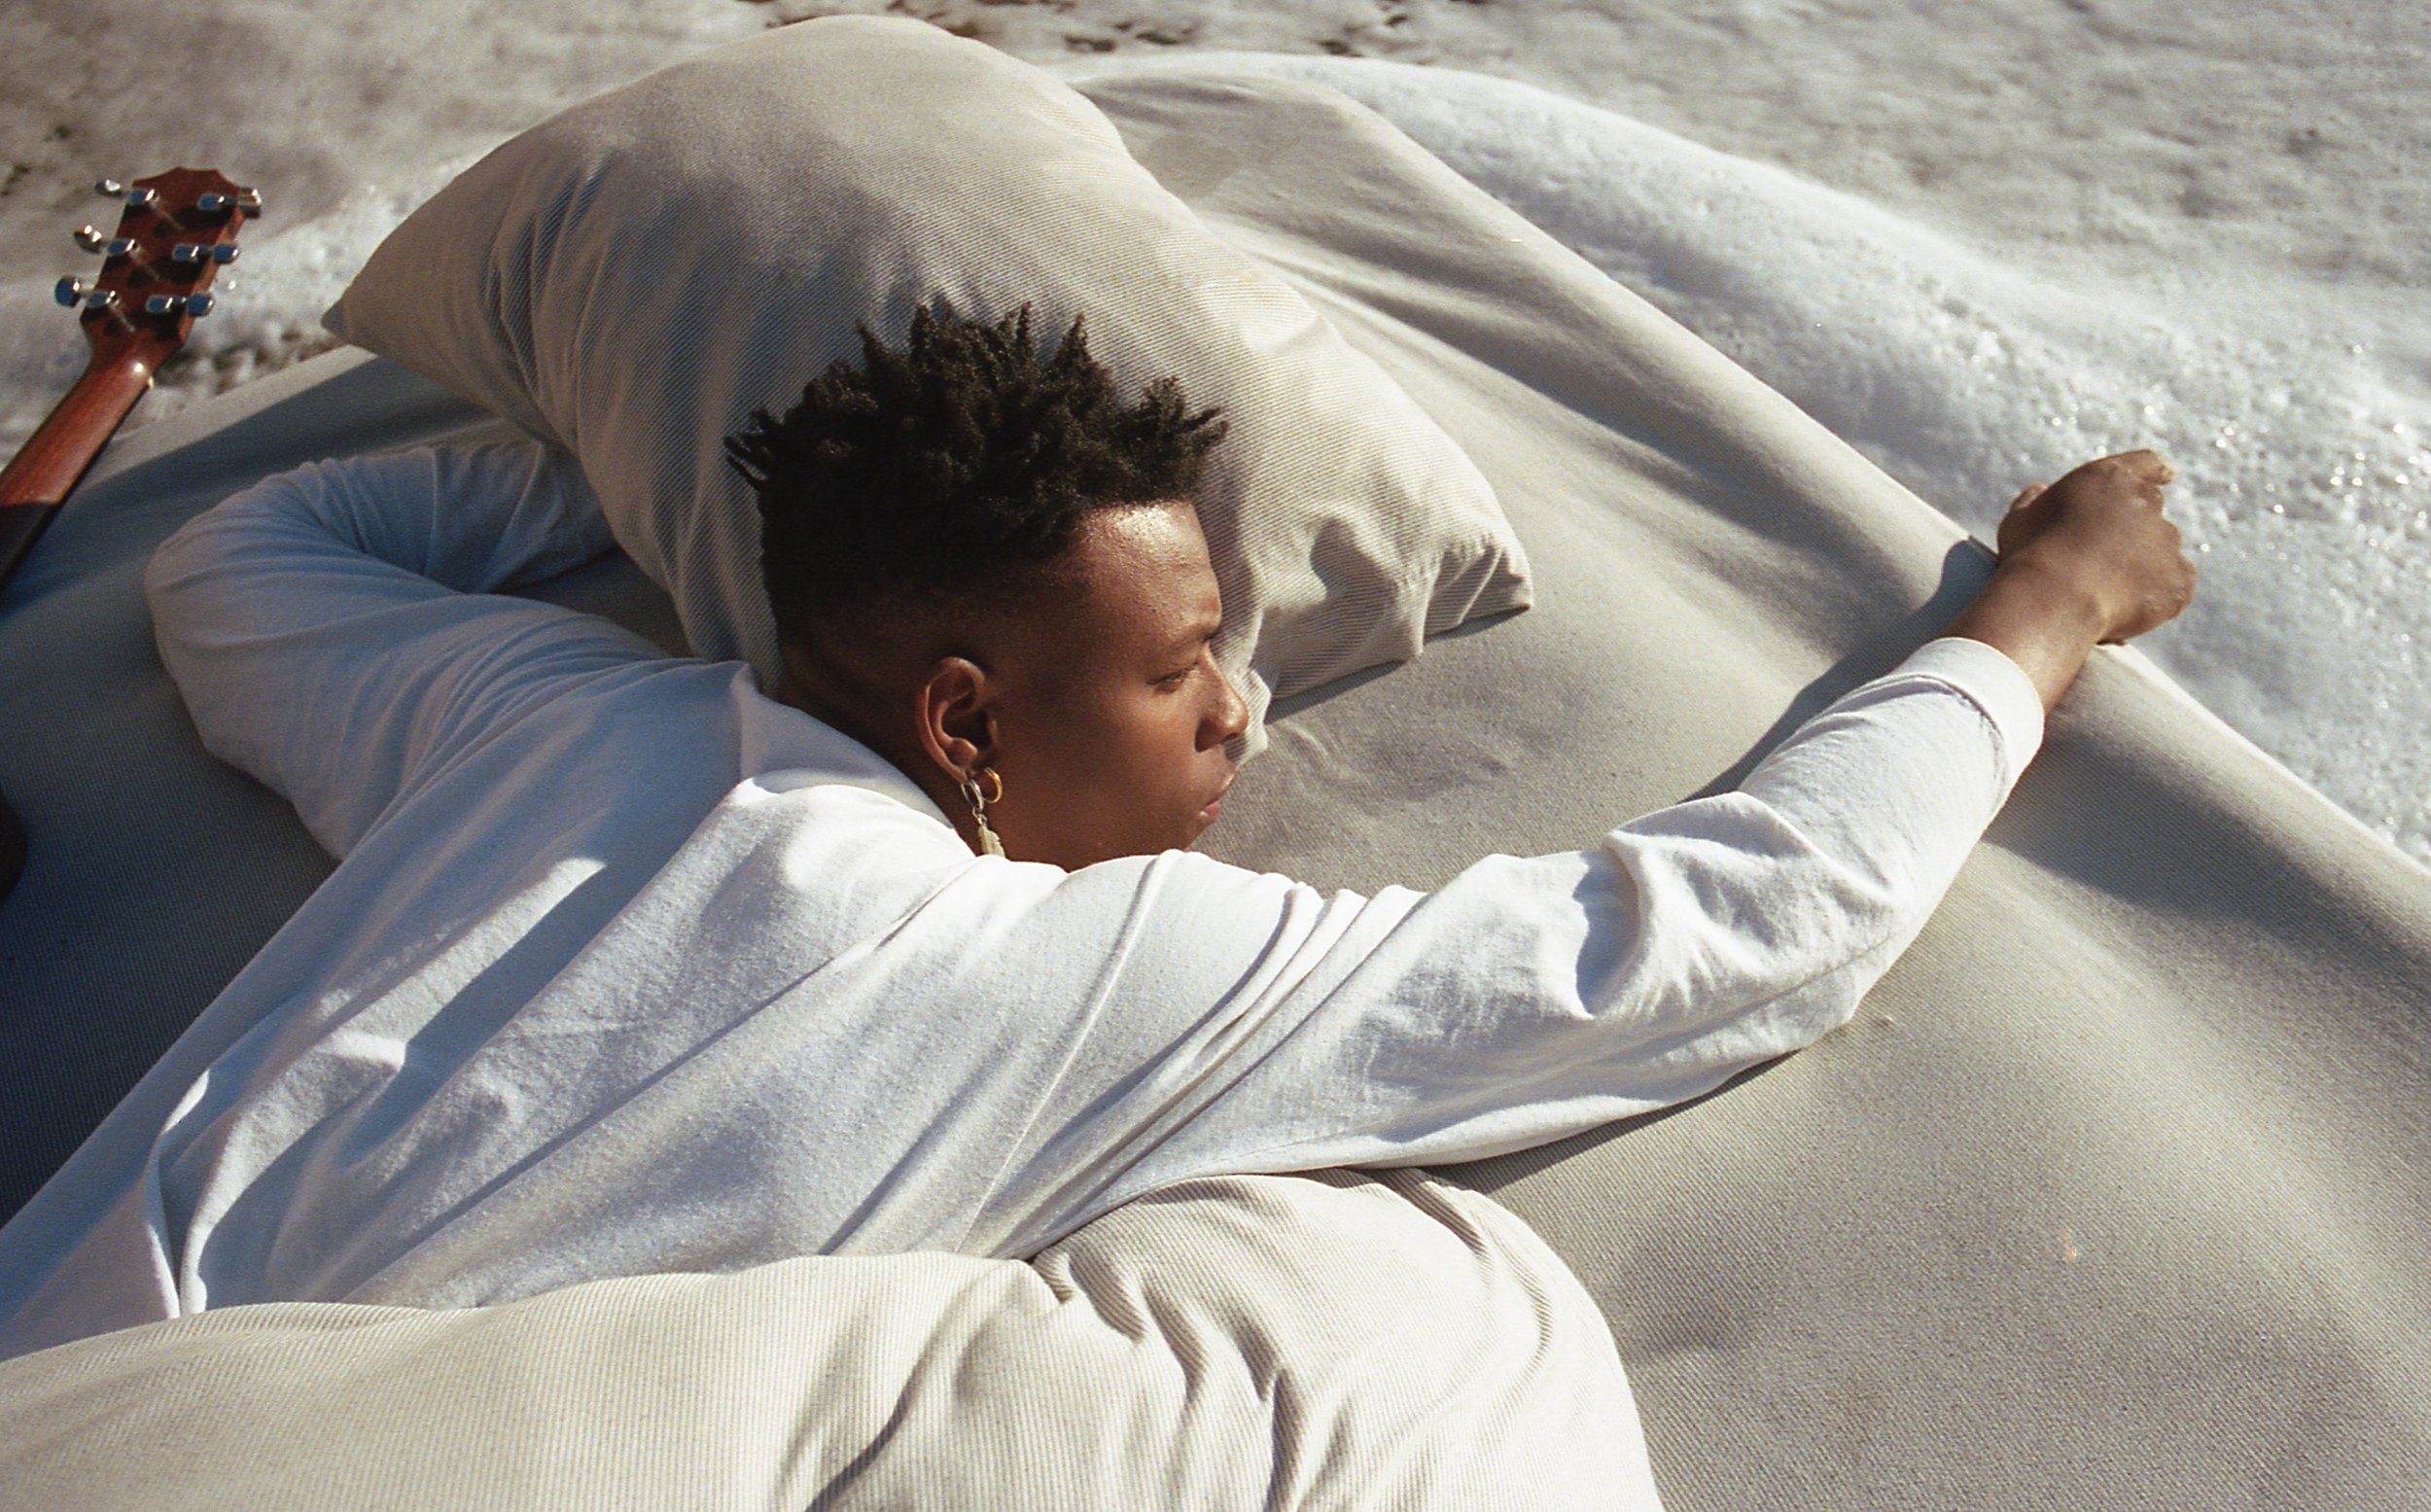 Changing tides: Brandon Banks and his new blueprint for contemporary R&B - Waves are a-makin' on Brandon's new EP.fresh sounds